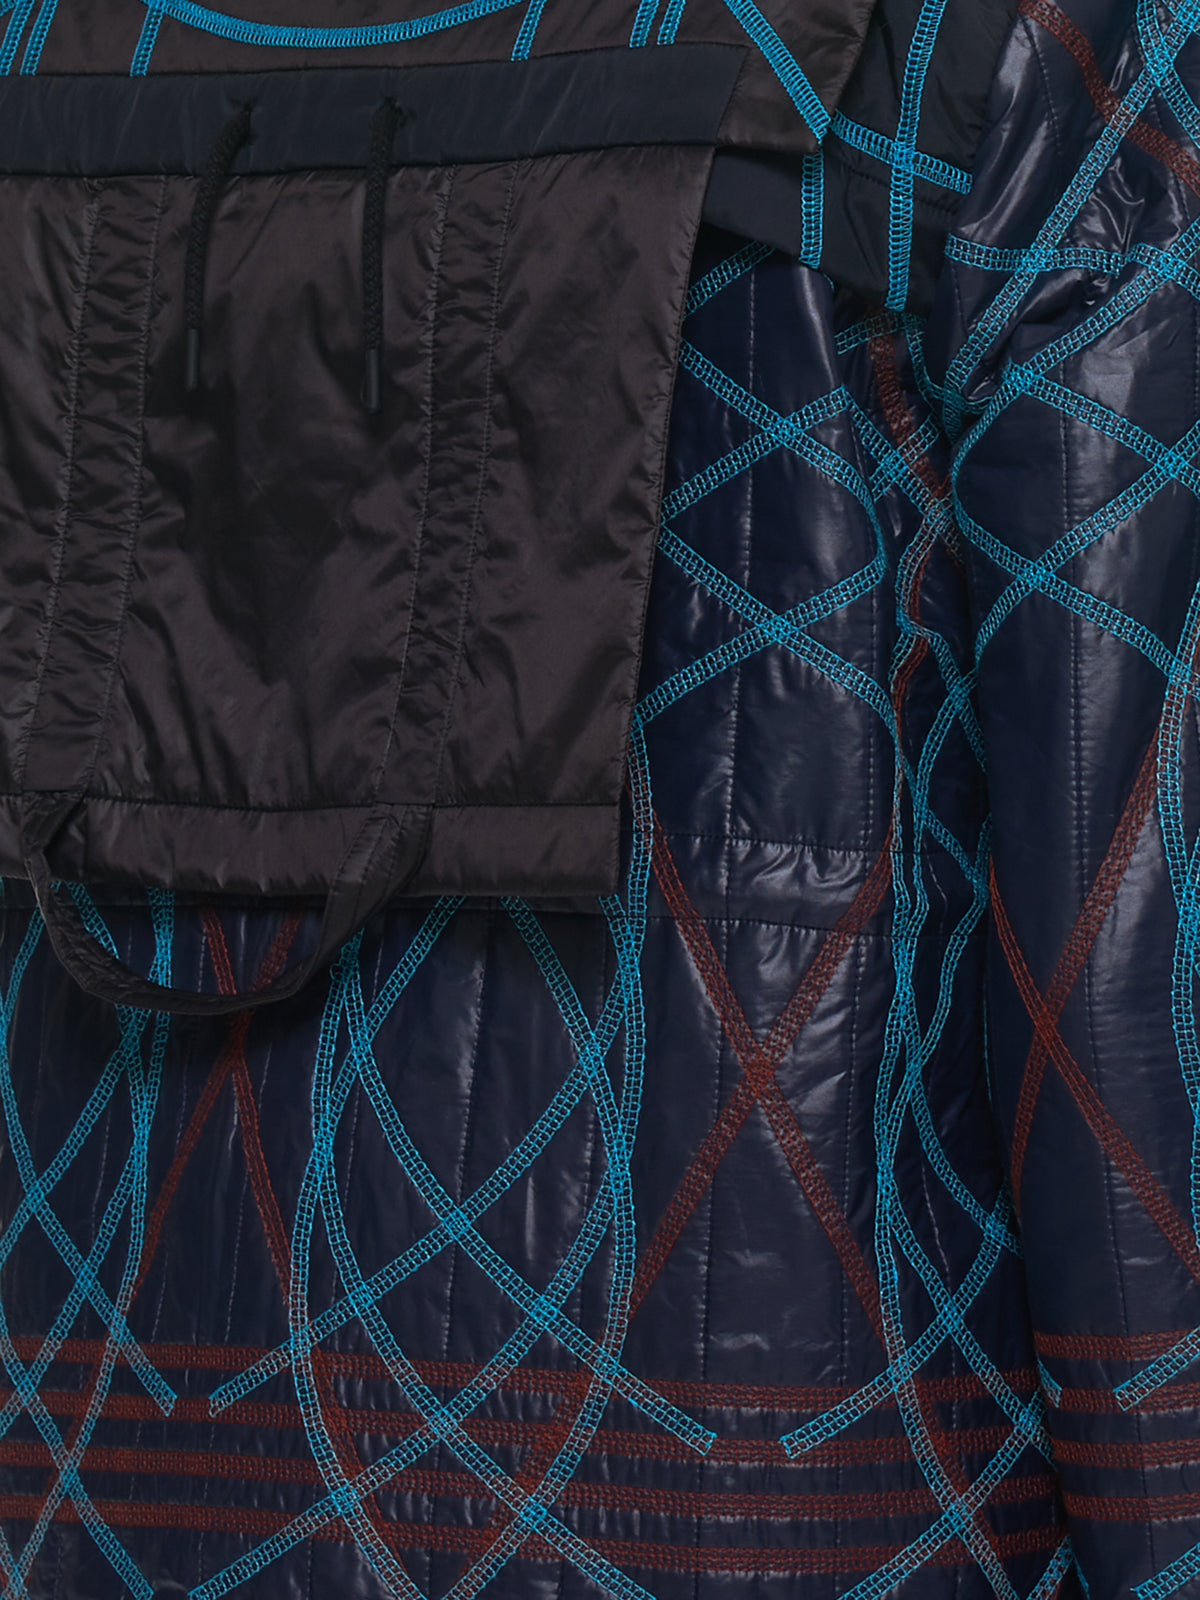 Quilted Embroidery Swirl Jacket (MWOJKT13-DARK-NAVY)